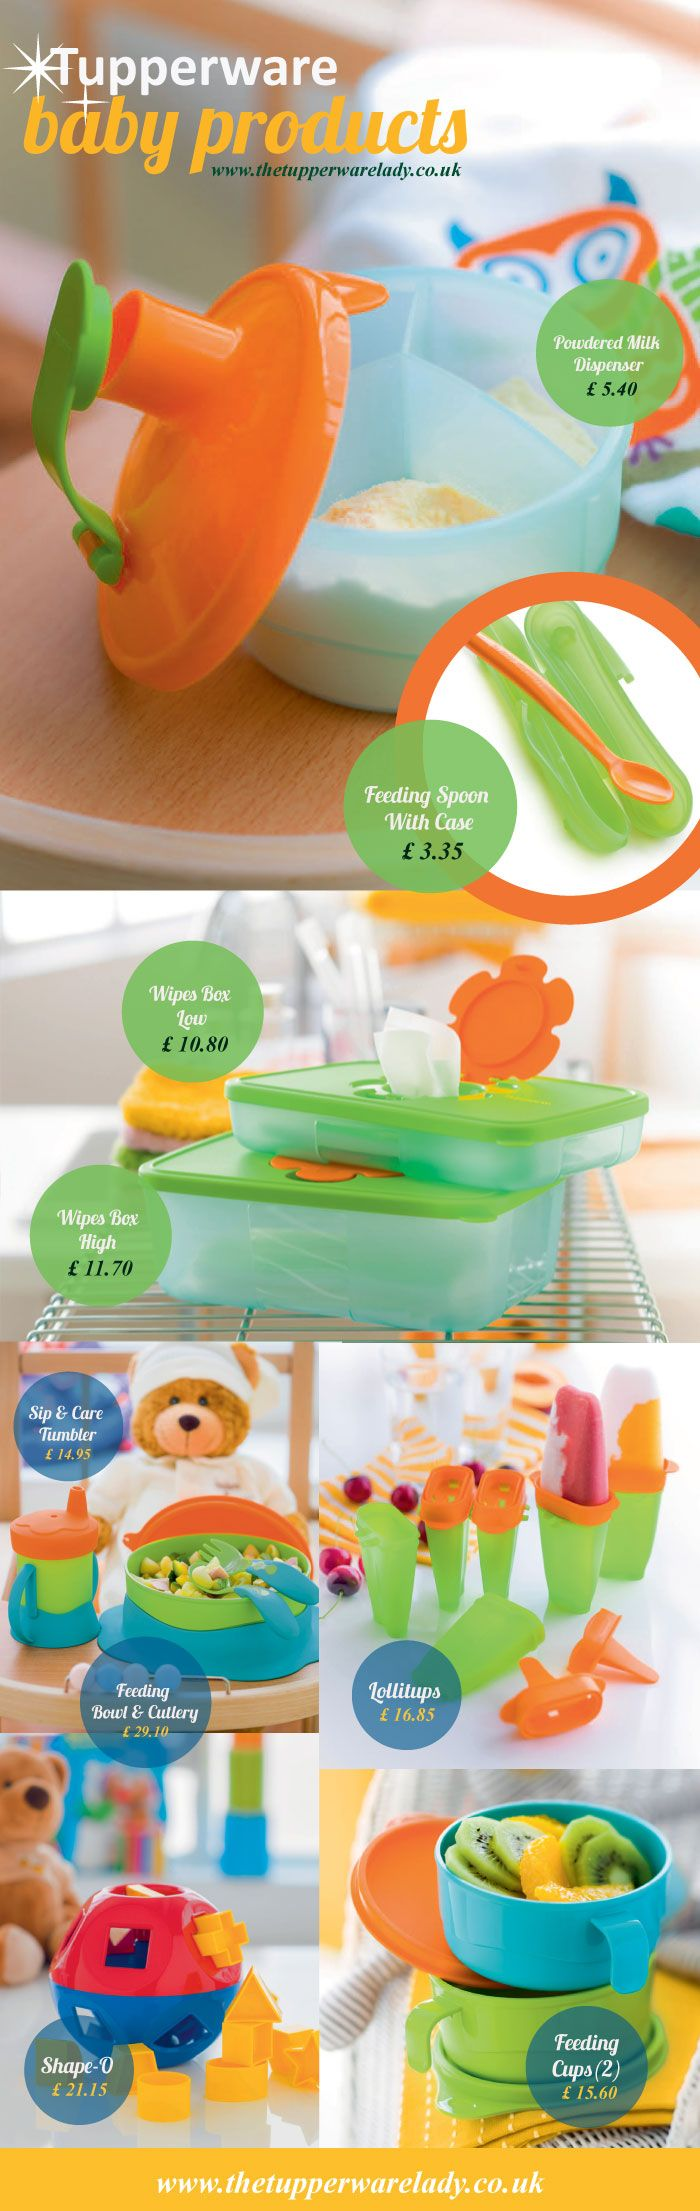 Tupperware baby products Www.my2.tupperware.com/tbrinkman